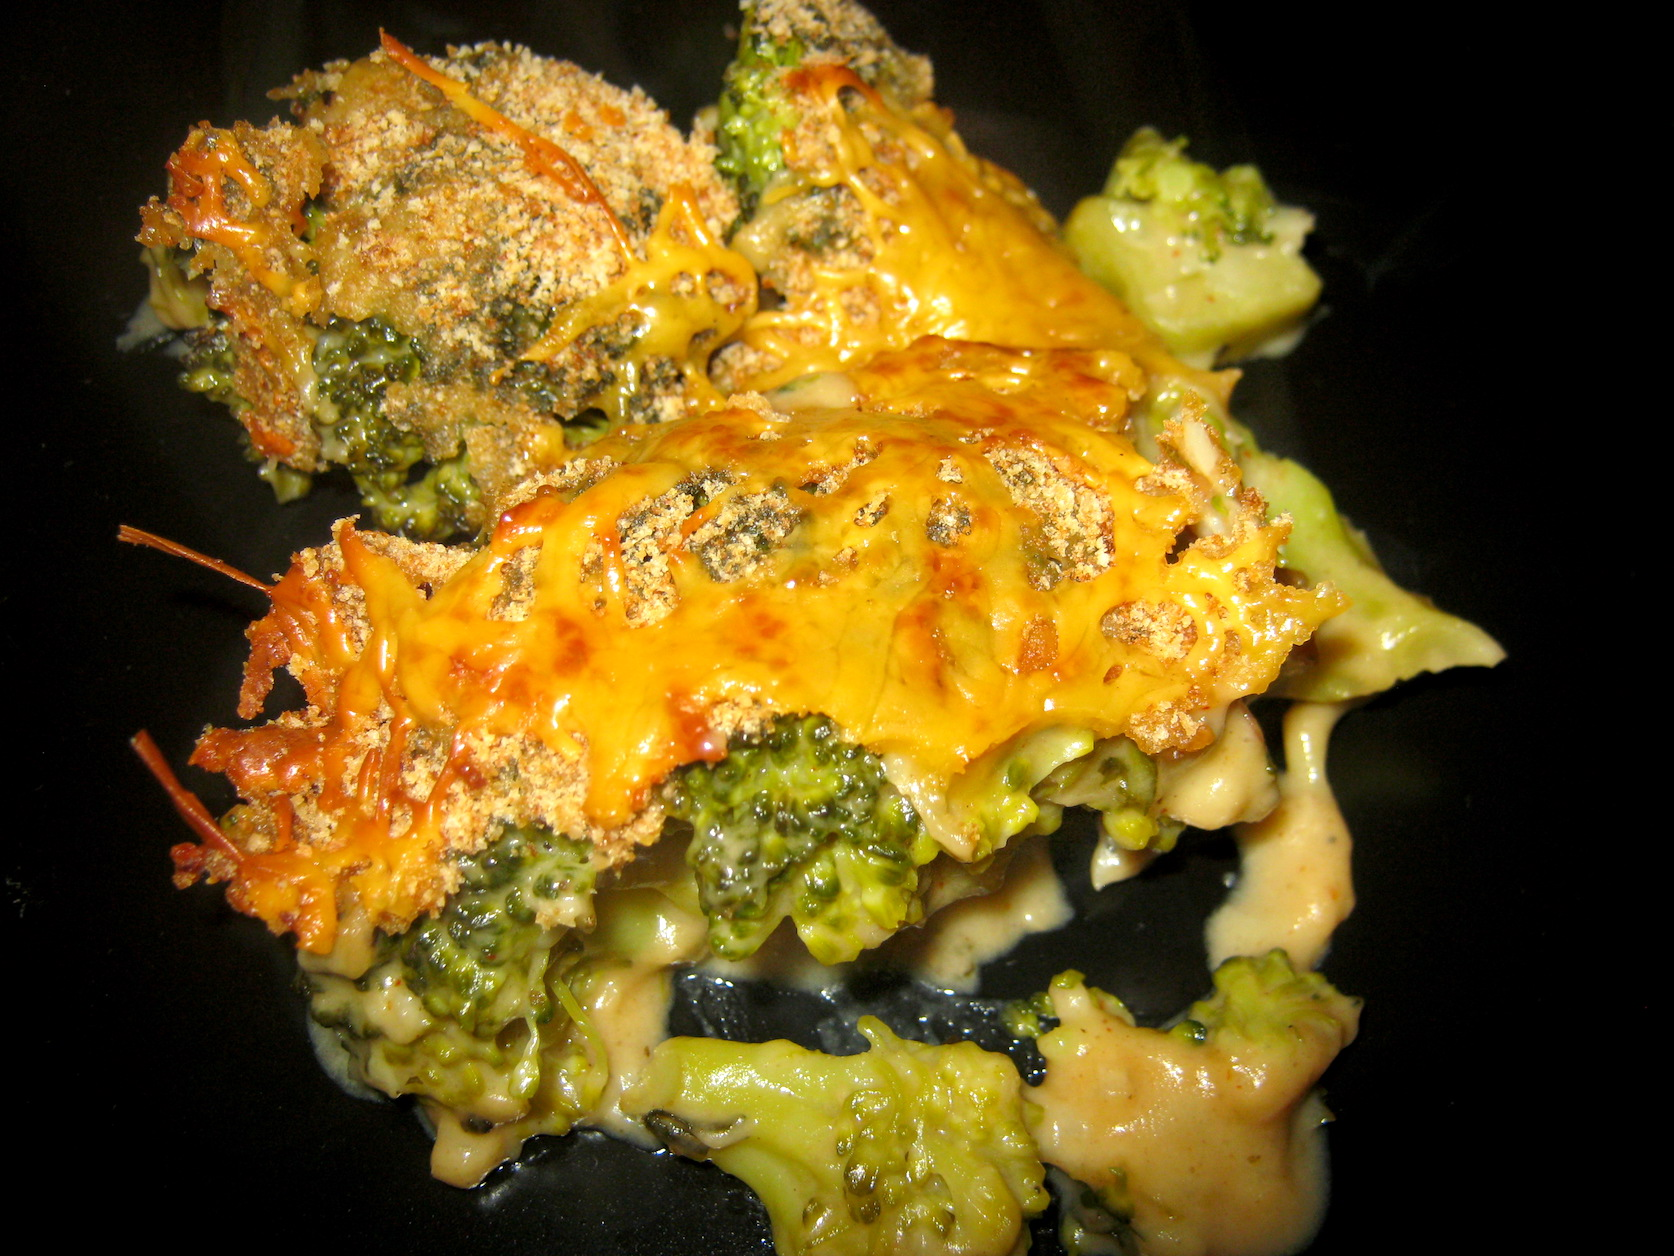 Bellville Baked Broccoli with creamy sauce cheese and bread crumbs